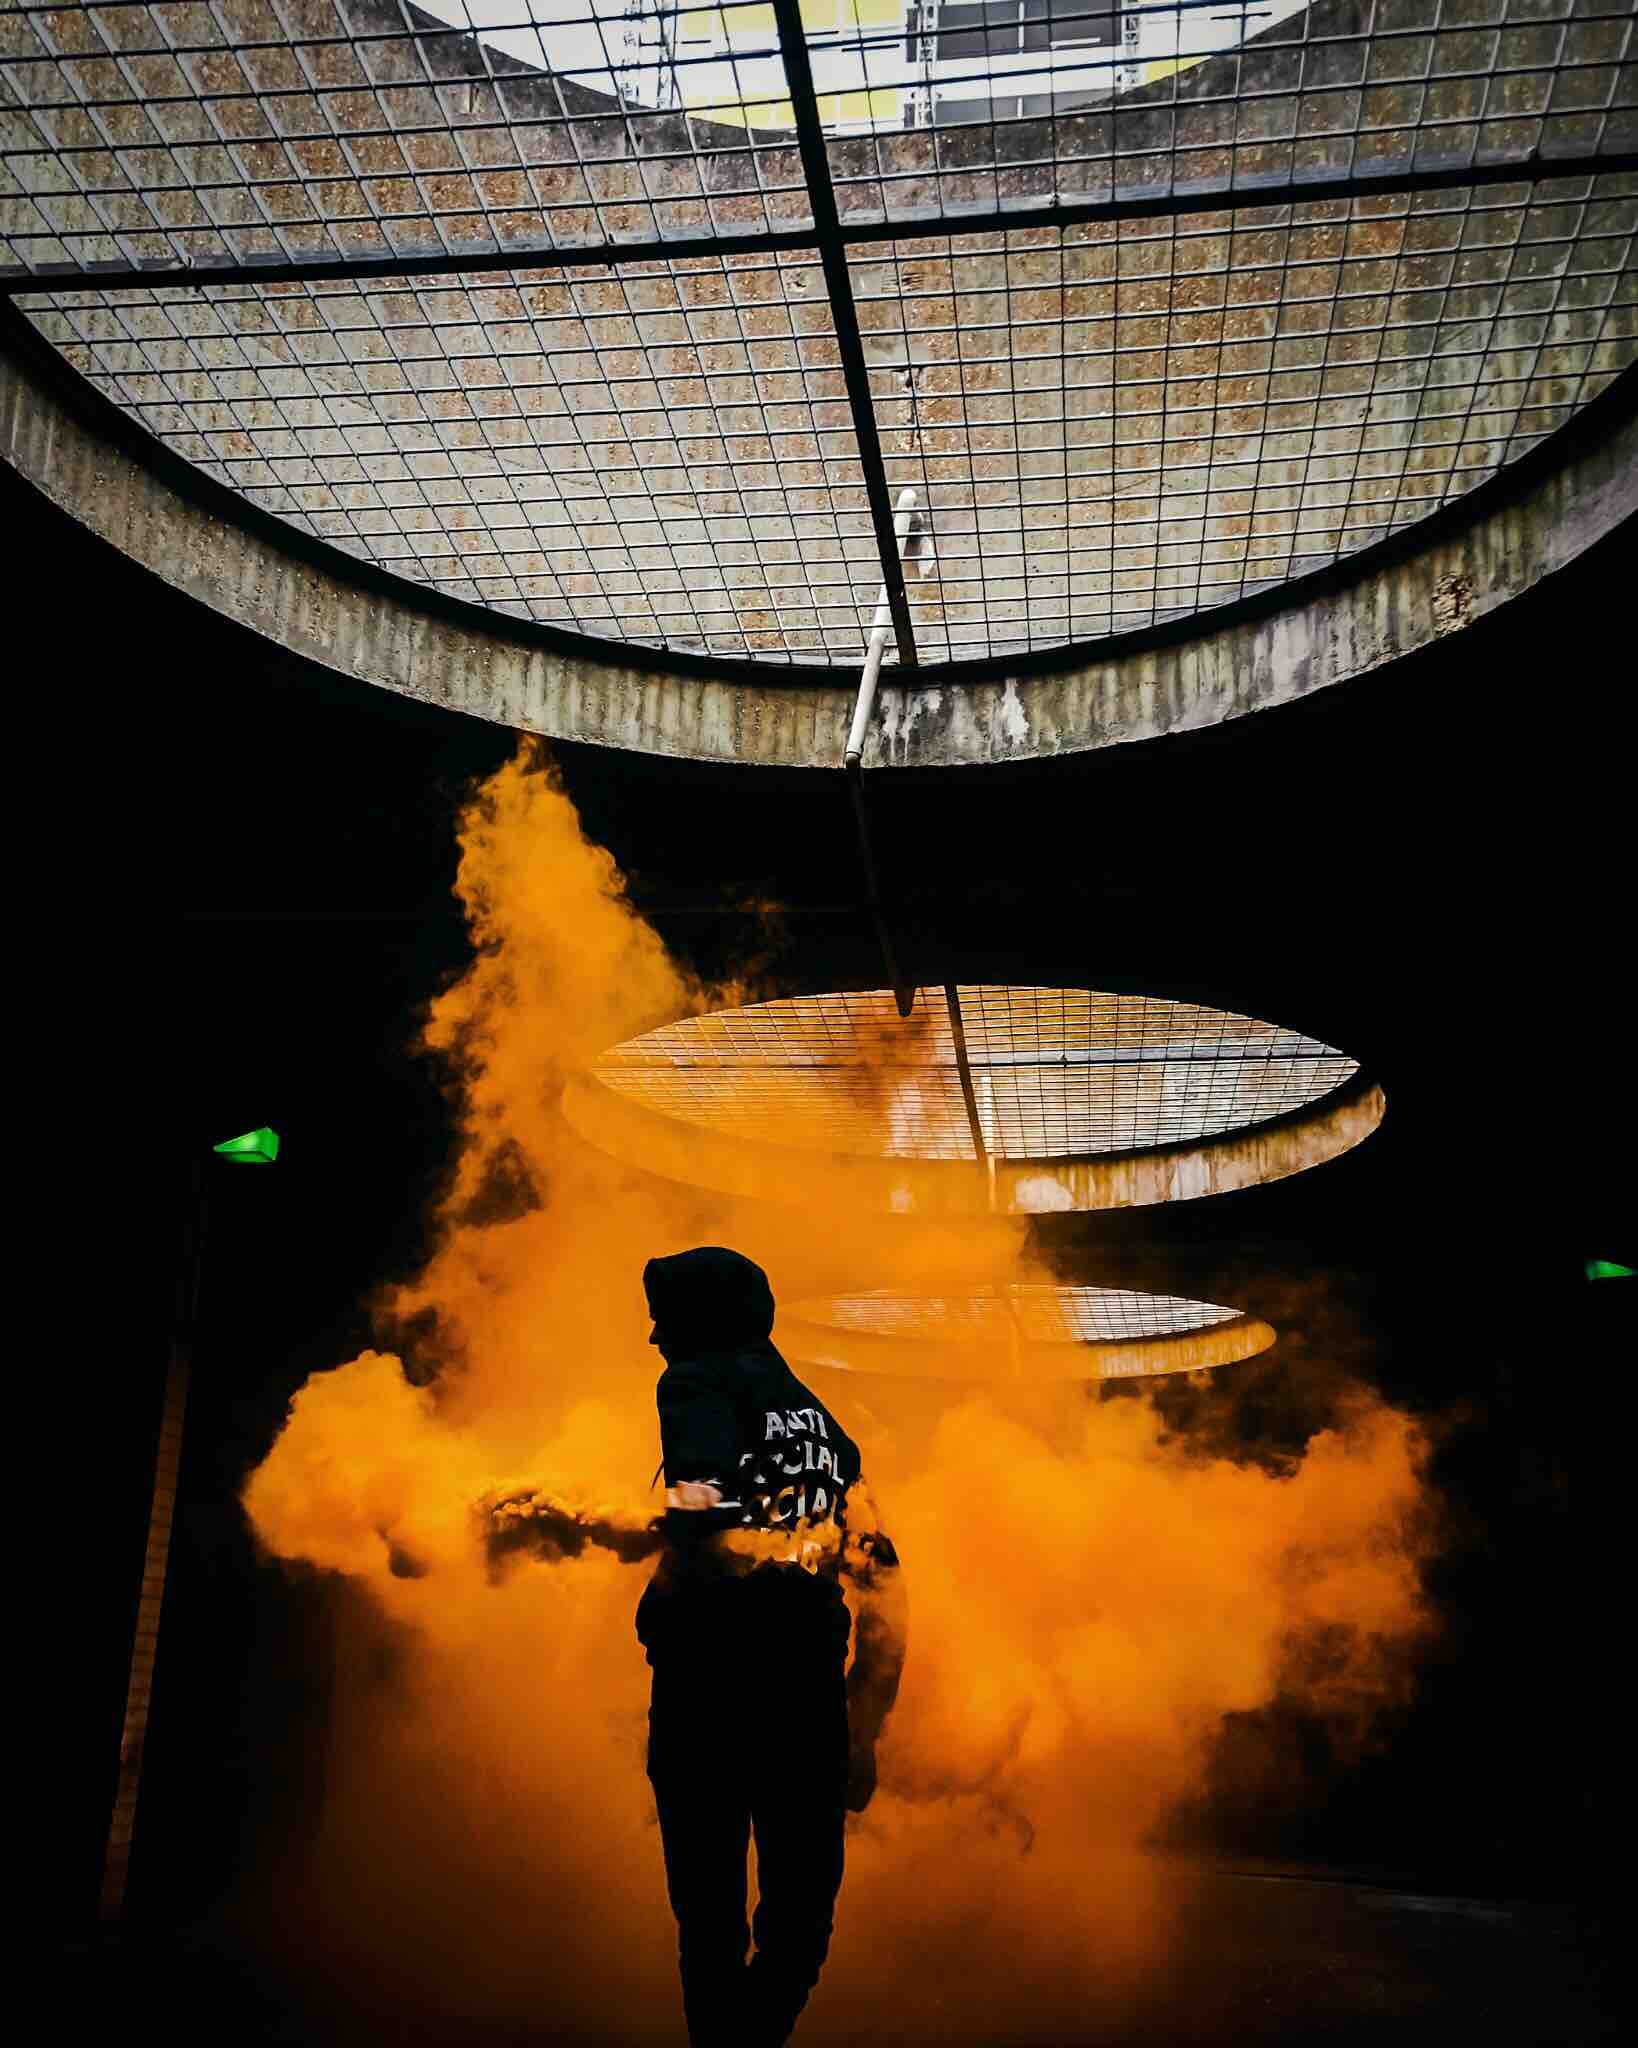 silhouette of person surrounded by orange smoke on underground